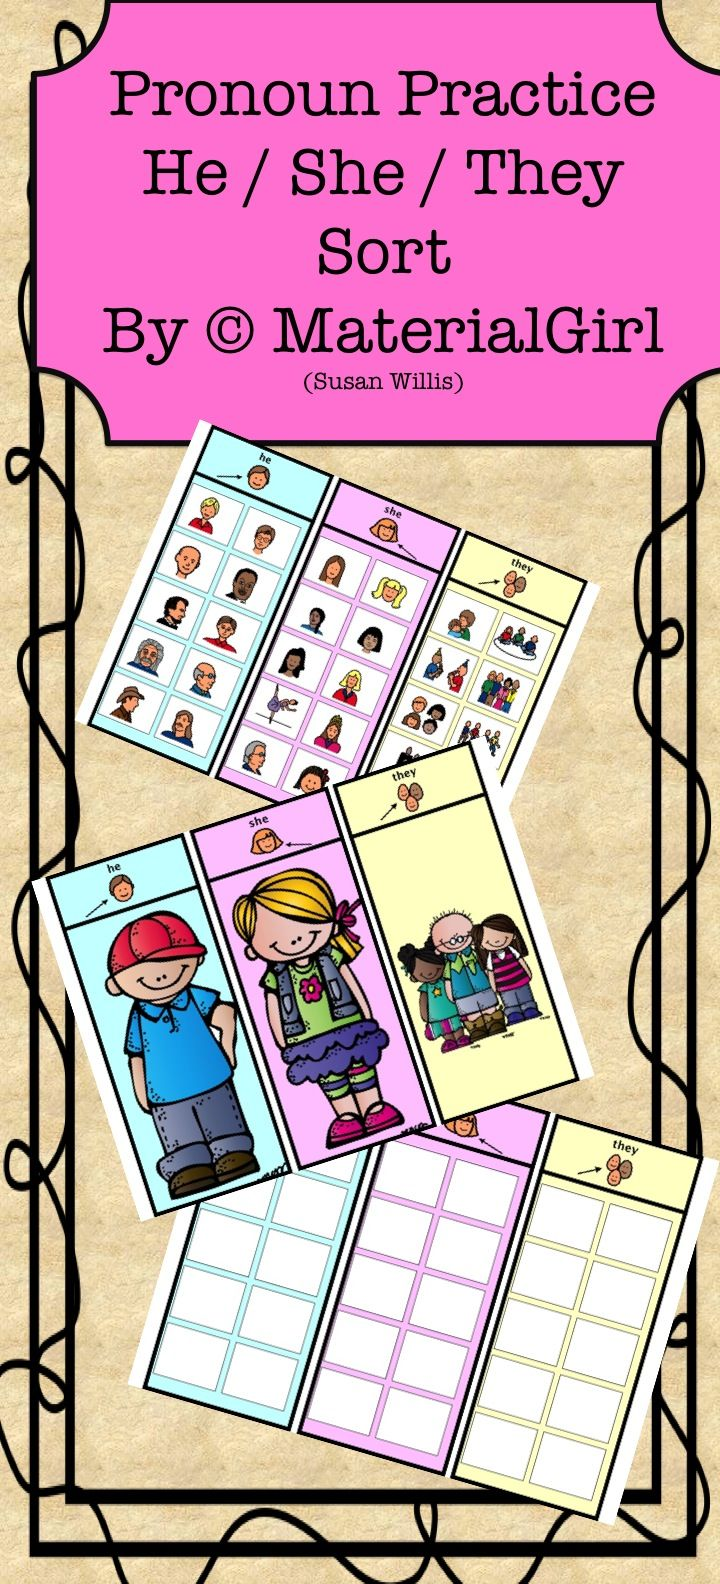 Pronoun Practice --- HE / SHE / THEY Sorting Activity with Boardmaker icons. I use this activity as a speech therapy activity for those with language delays, autism, and learning handicapped. #autism #speechtherapy #specialed #specialeducation #RSP #grammar #pronouns